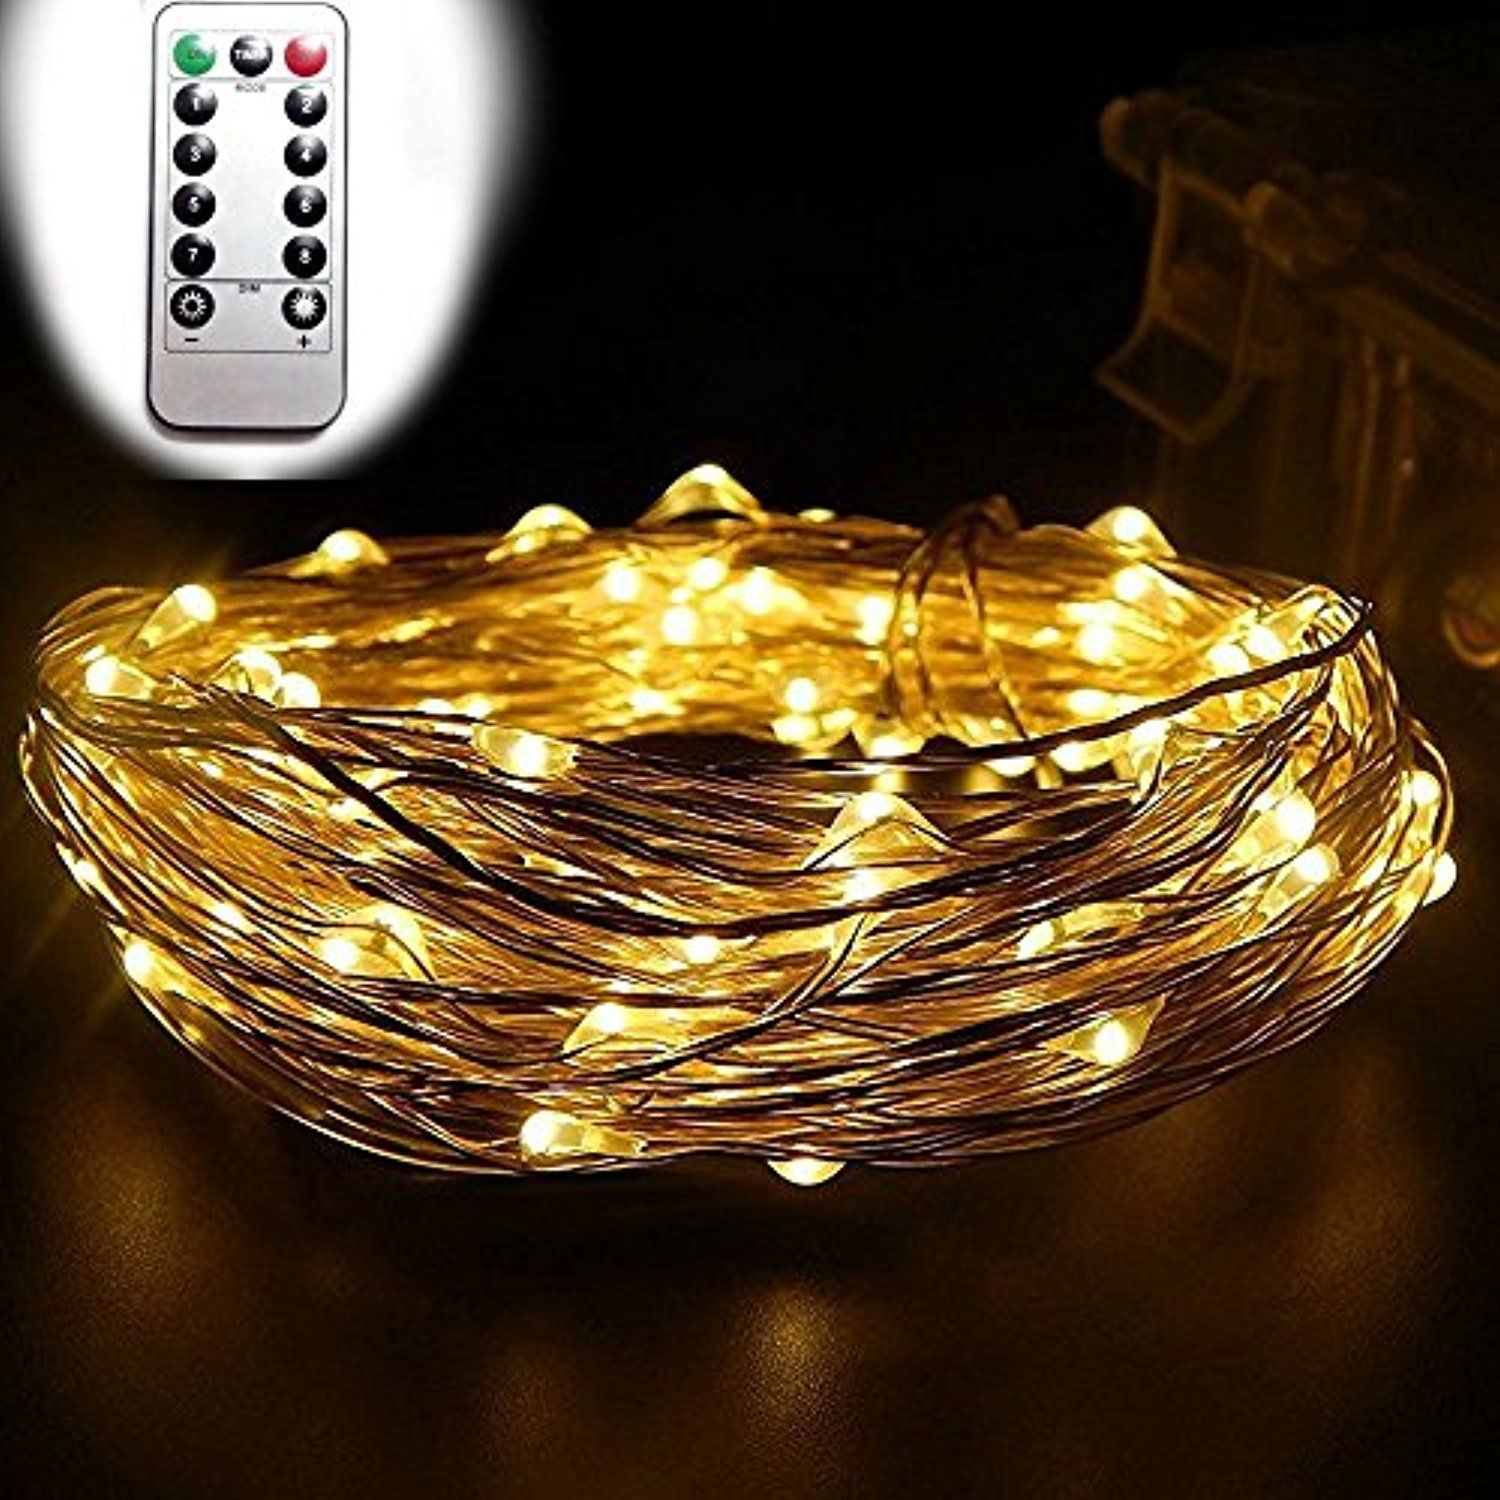 Dreamworth 10m 100 Leds Battery Operated Remote Contol Led String Flameless Flickering Candle Power Boost Circuit Lights Flexible Silver Coating Copper Wire